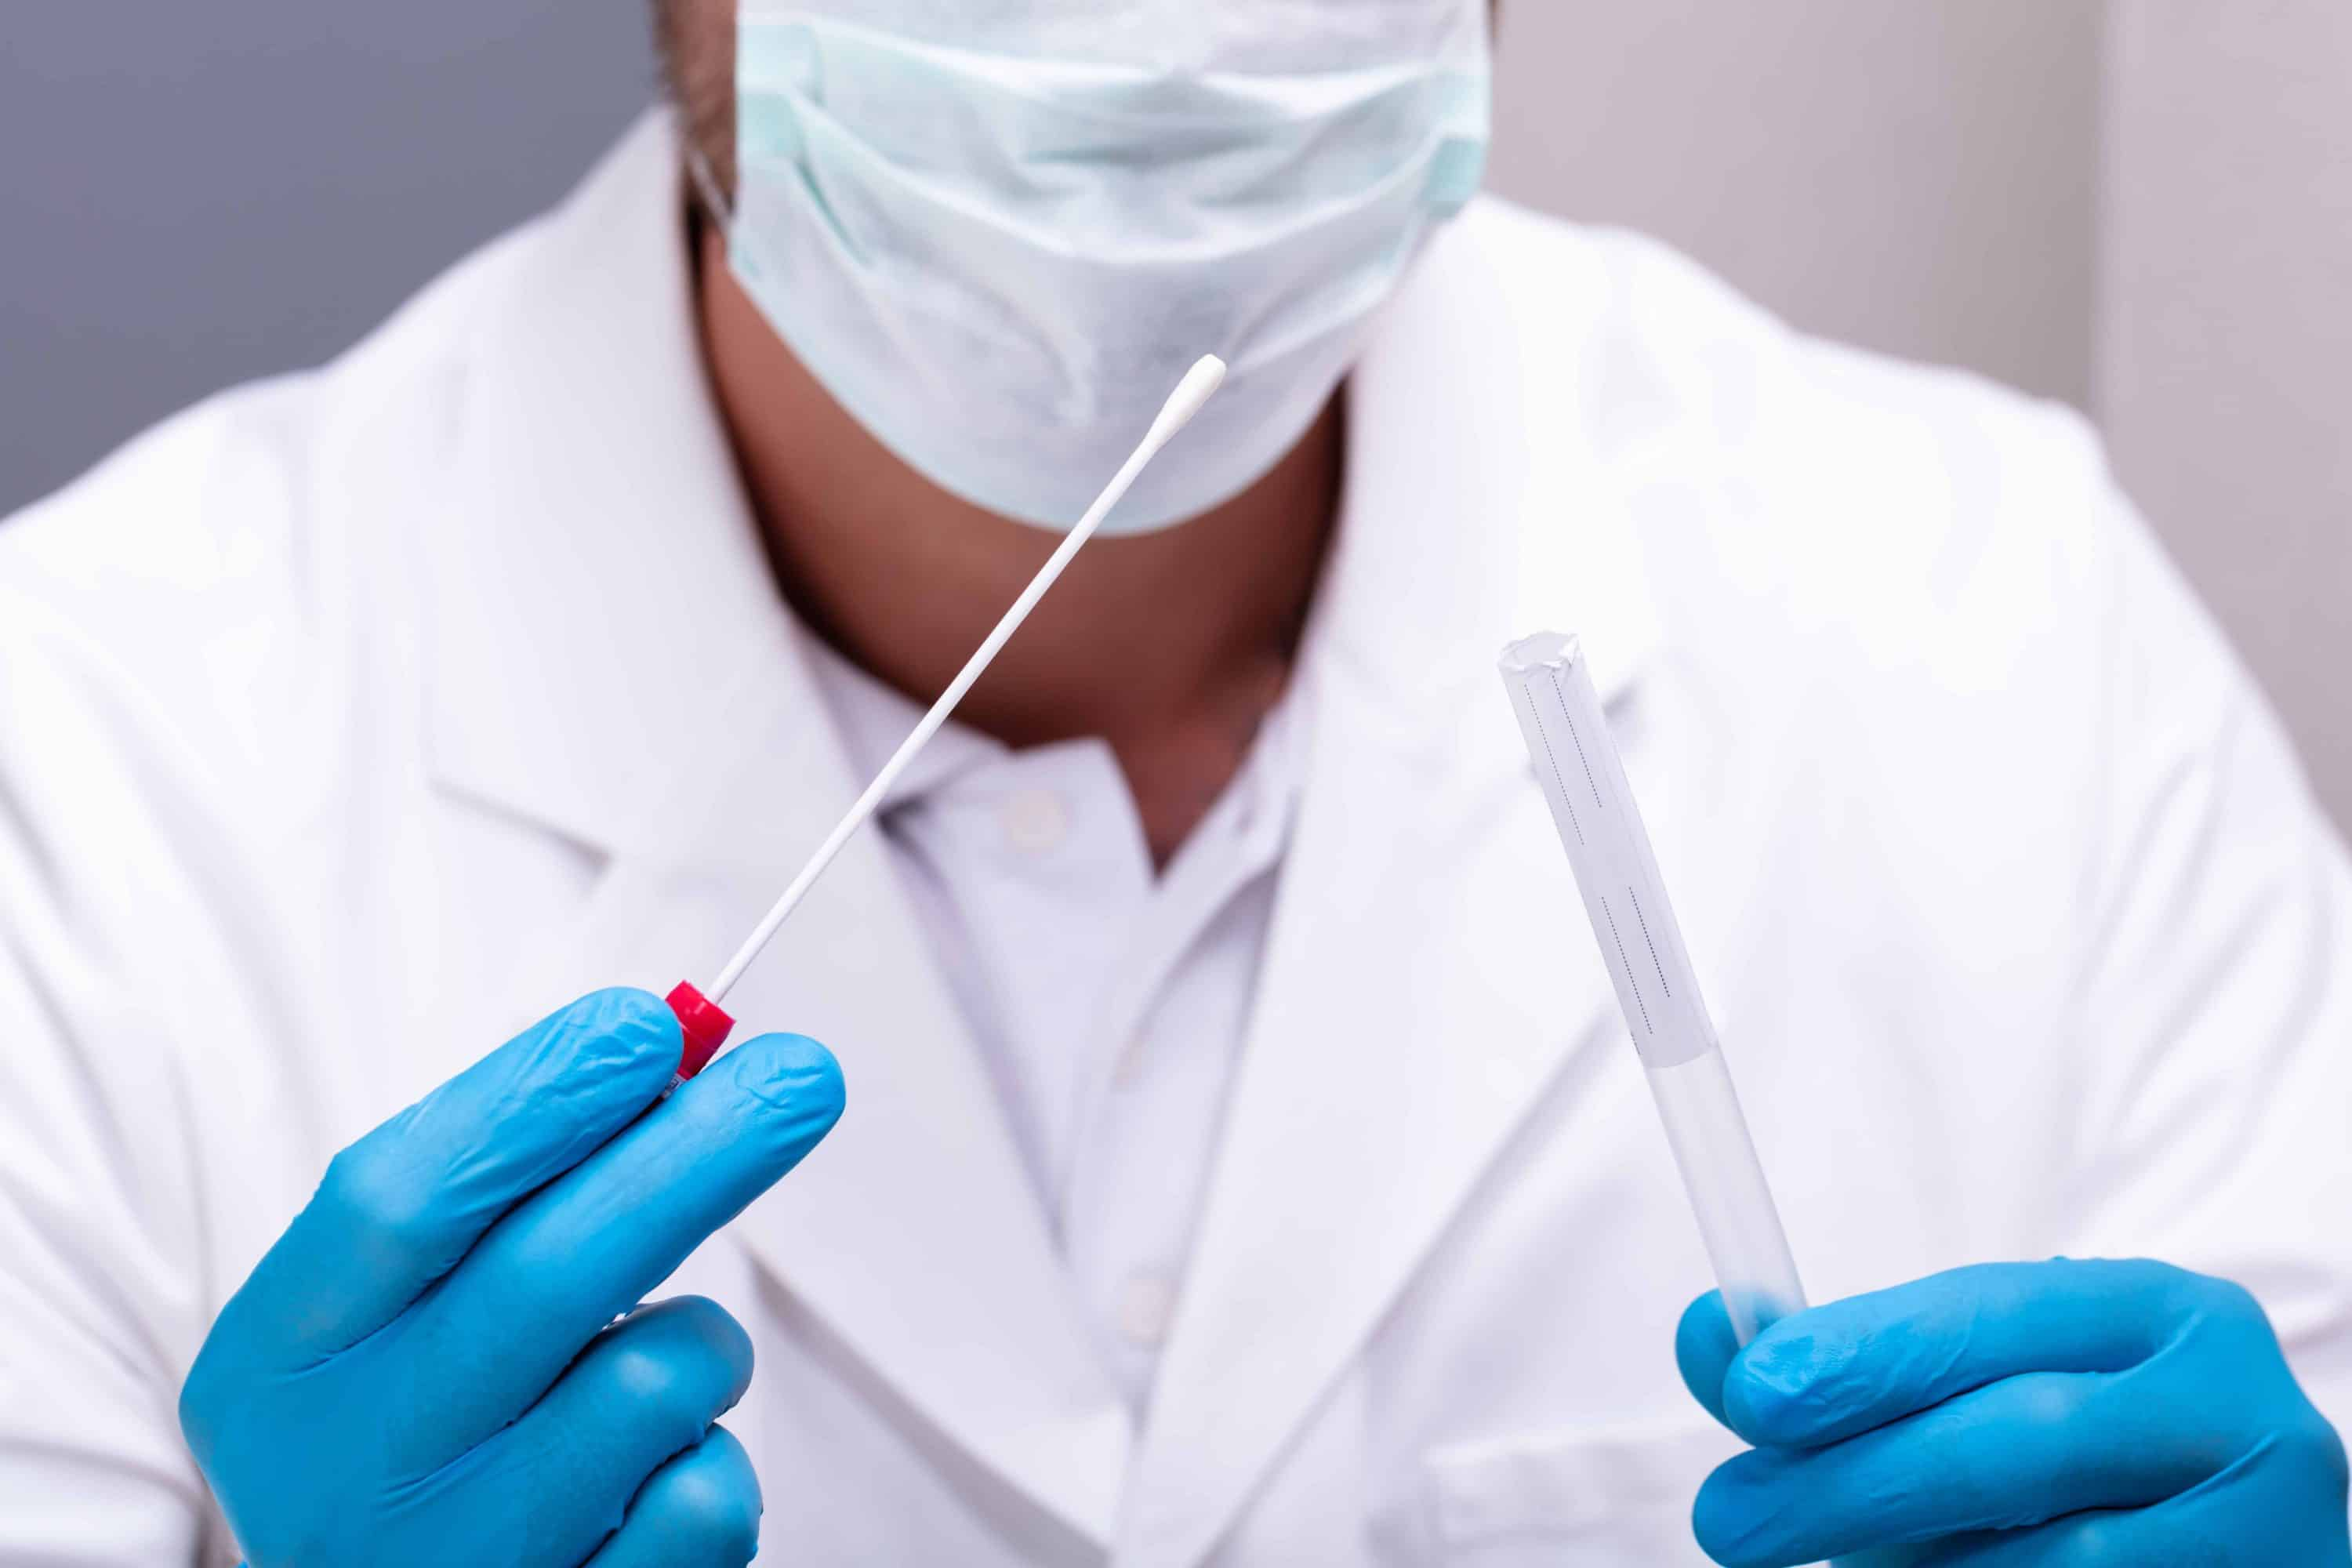 Male Doctor Wearing Blue Gloves Holding Cotton Swab And DNA Test Tube